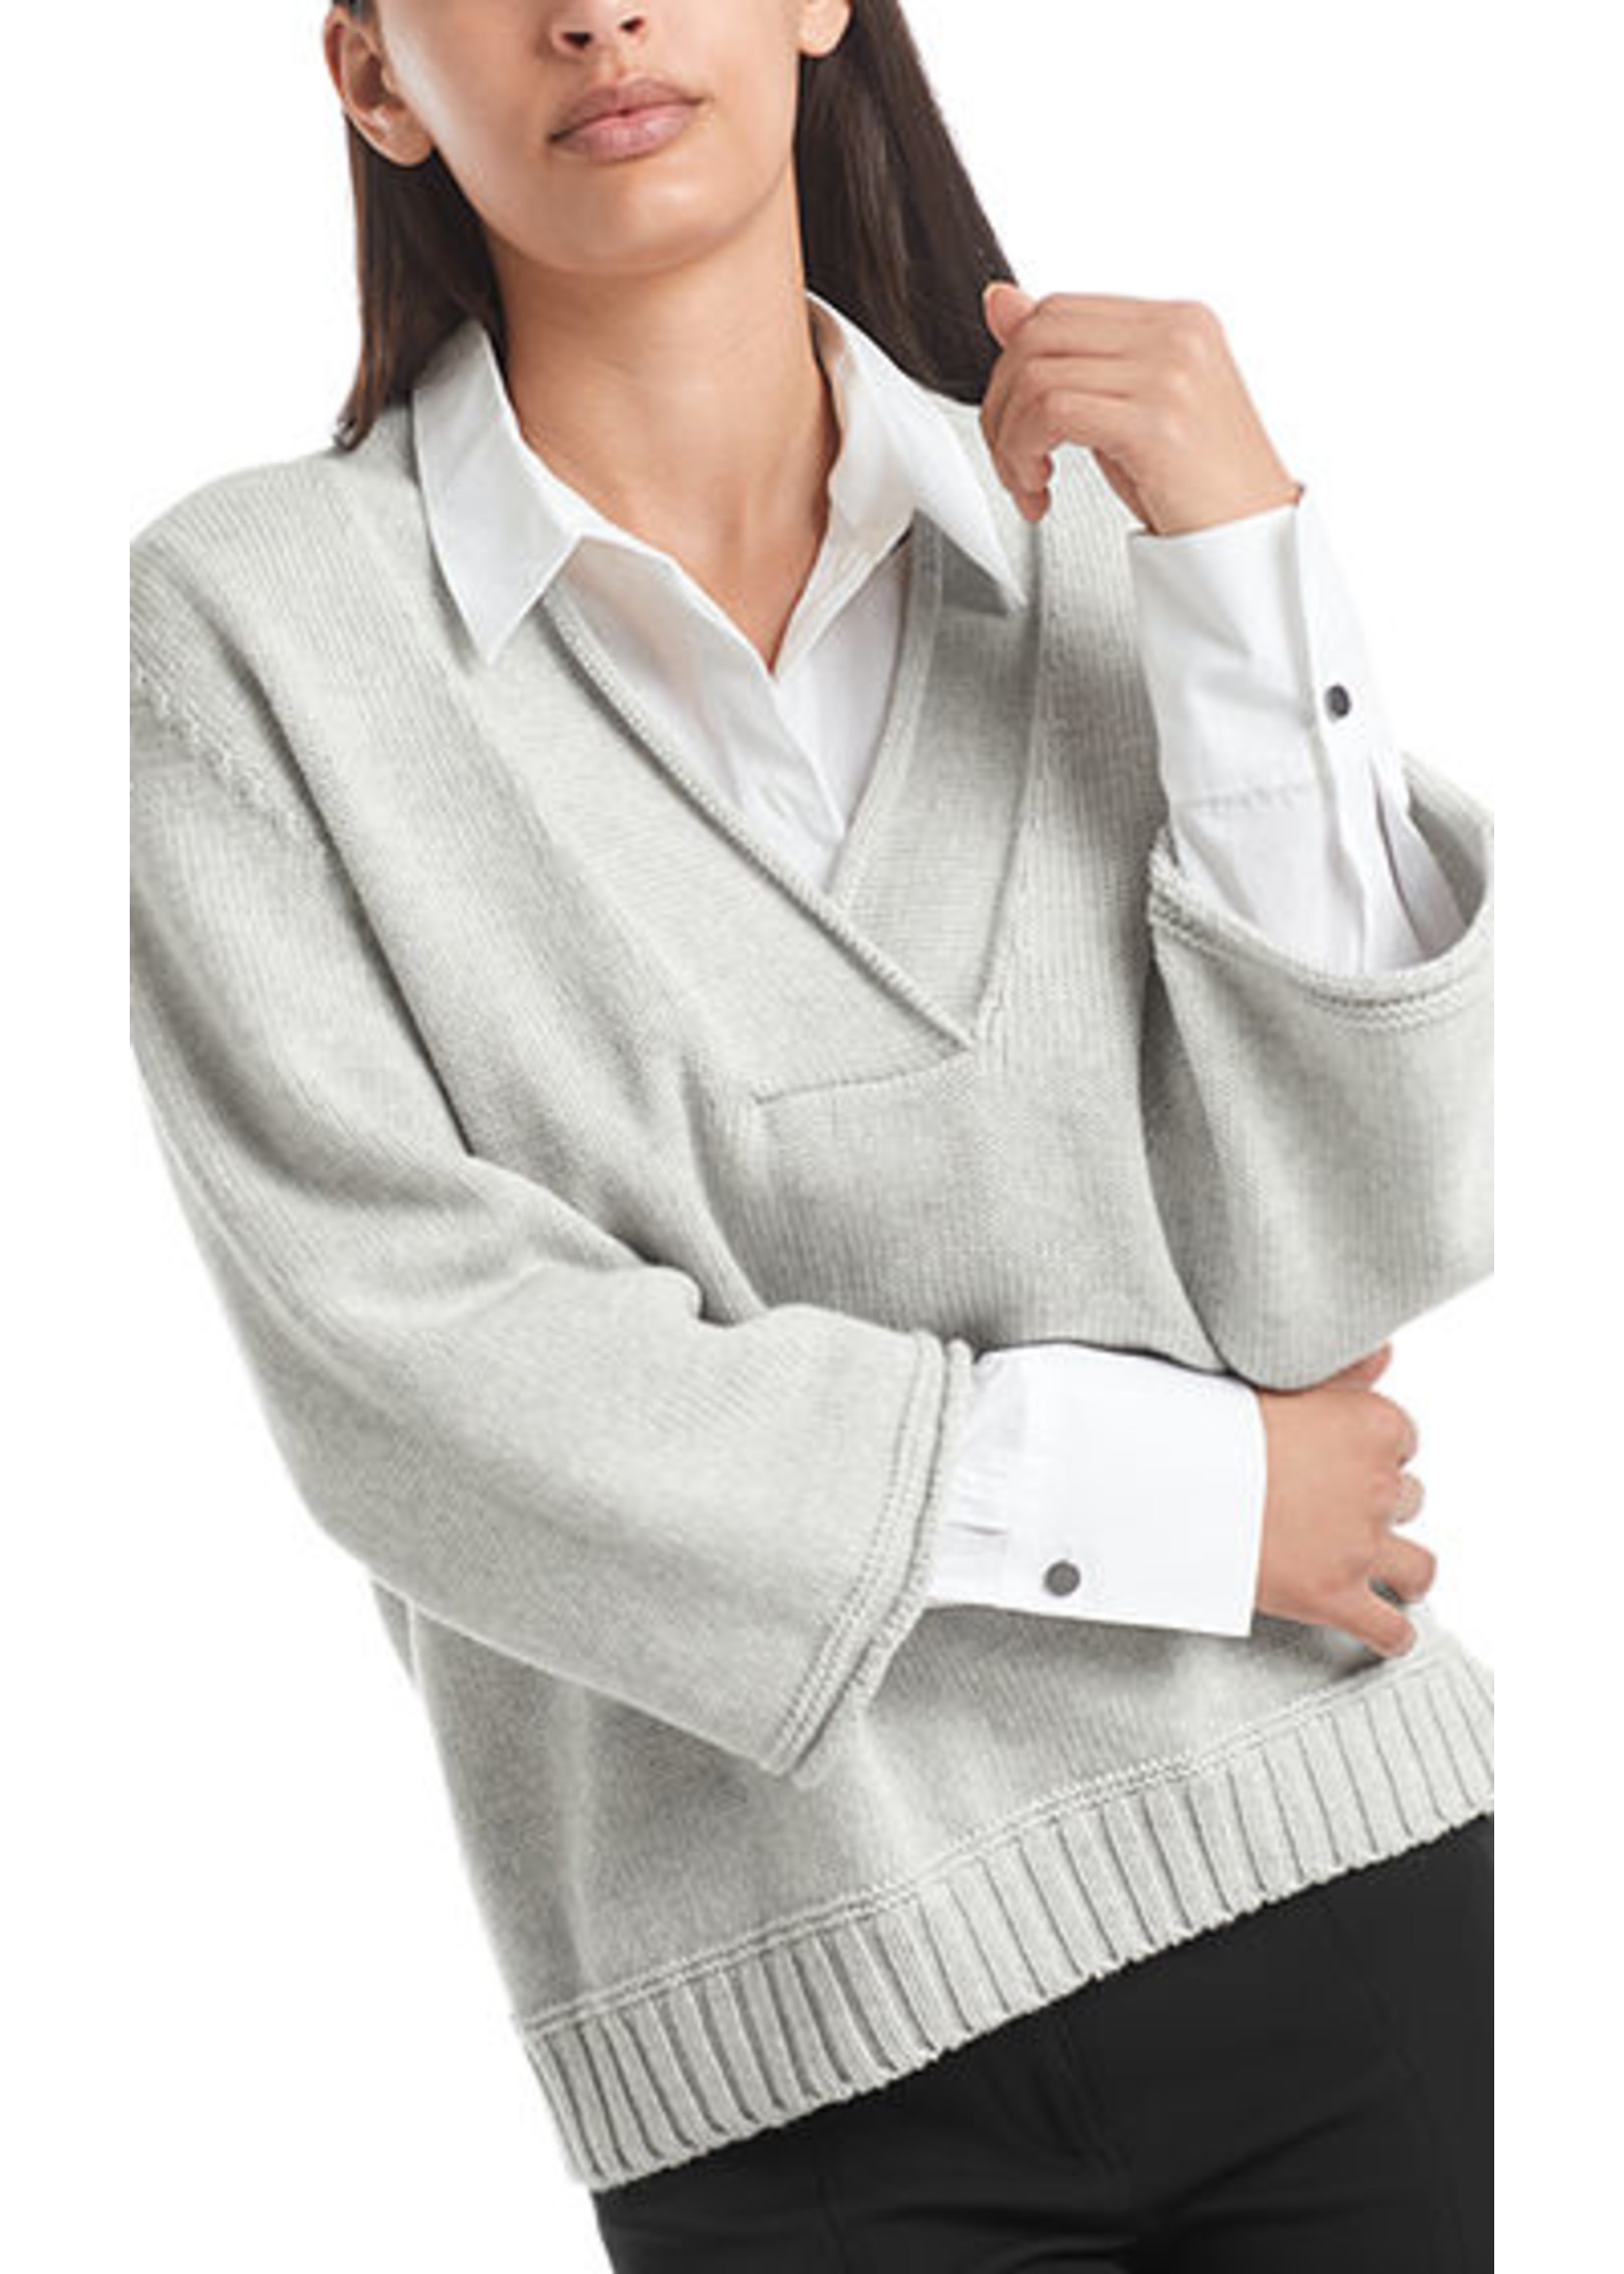 Sweater RC 41.60 M28 silver grey